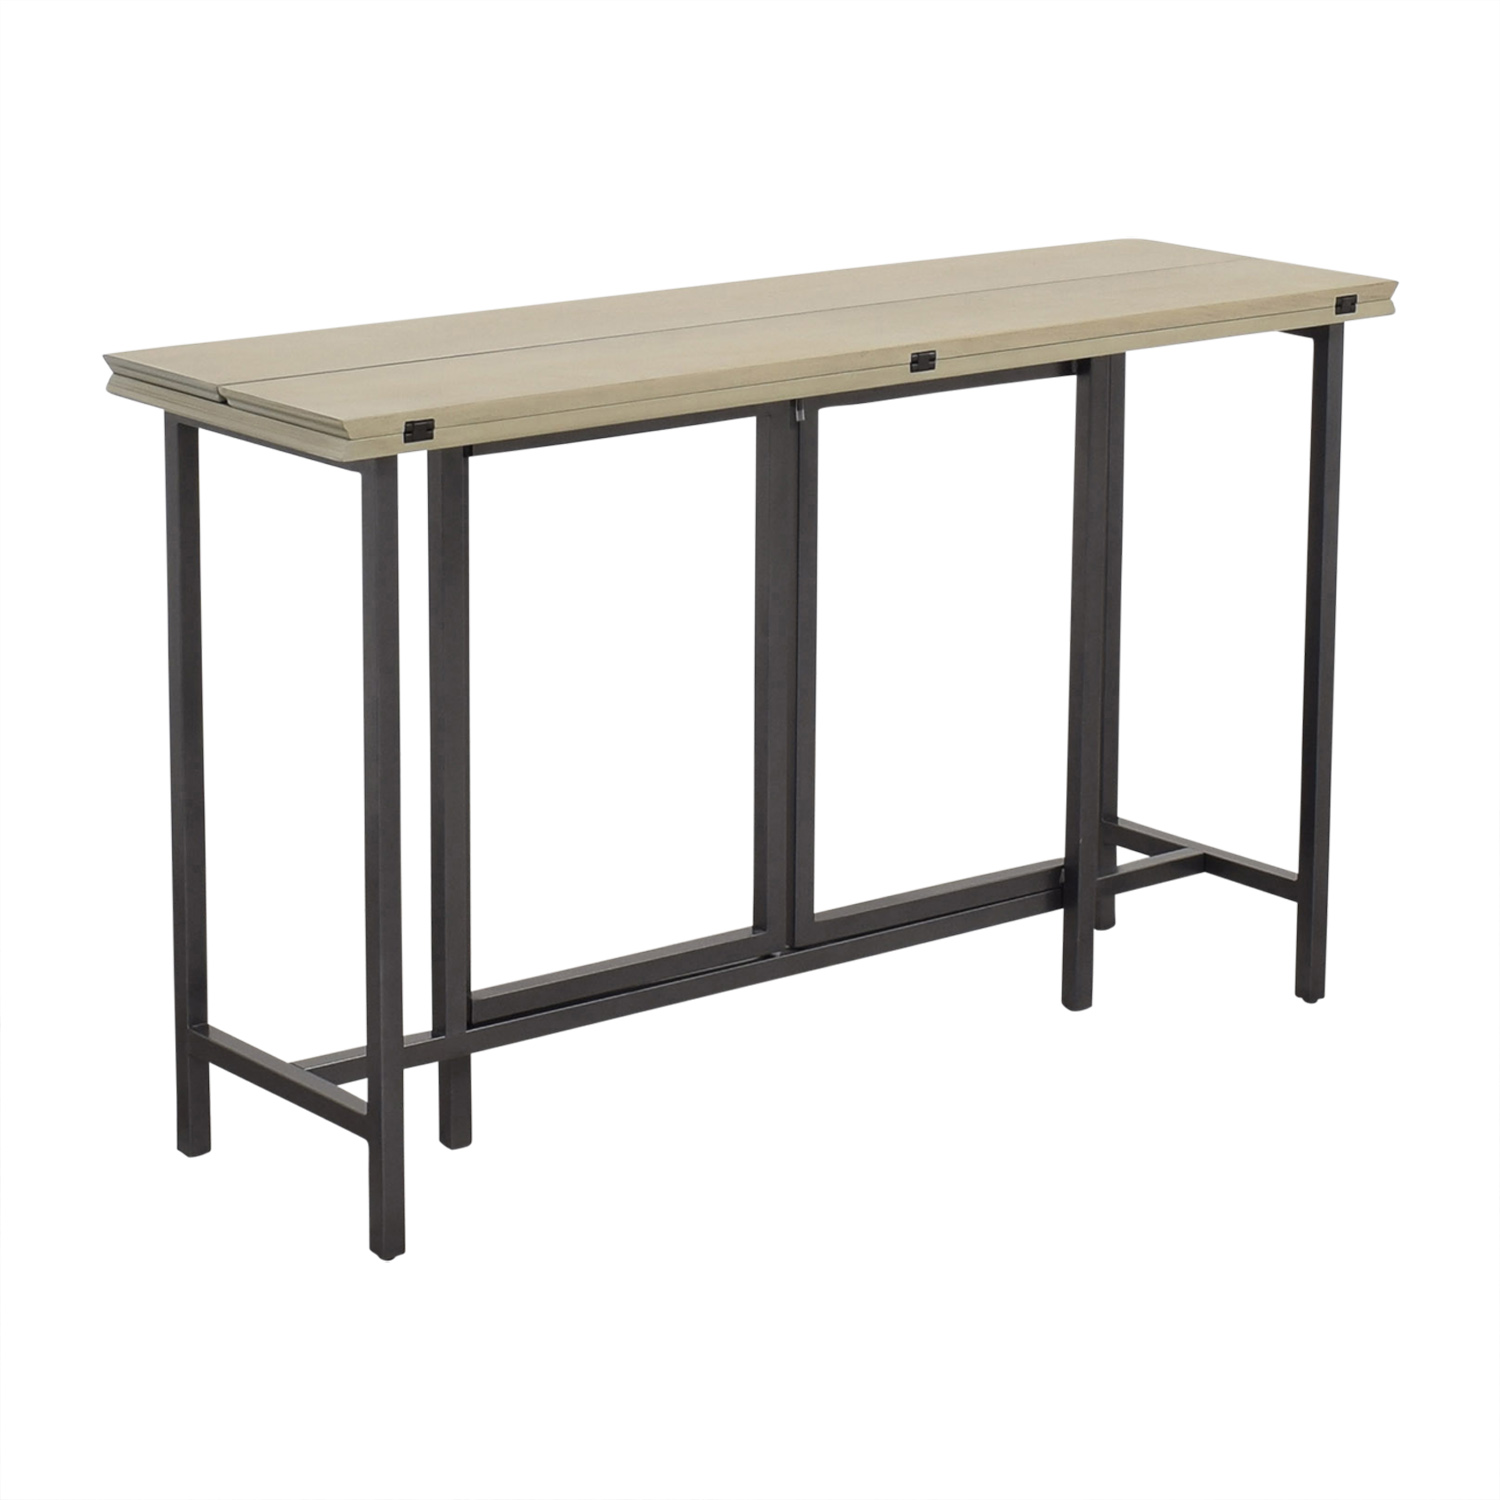 Extension Console Table price